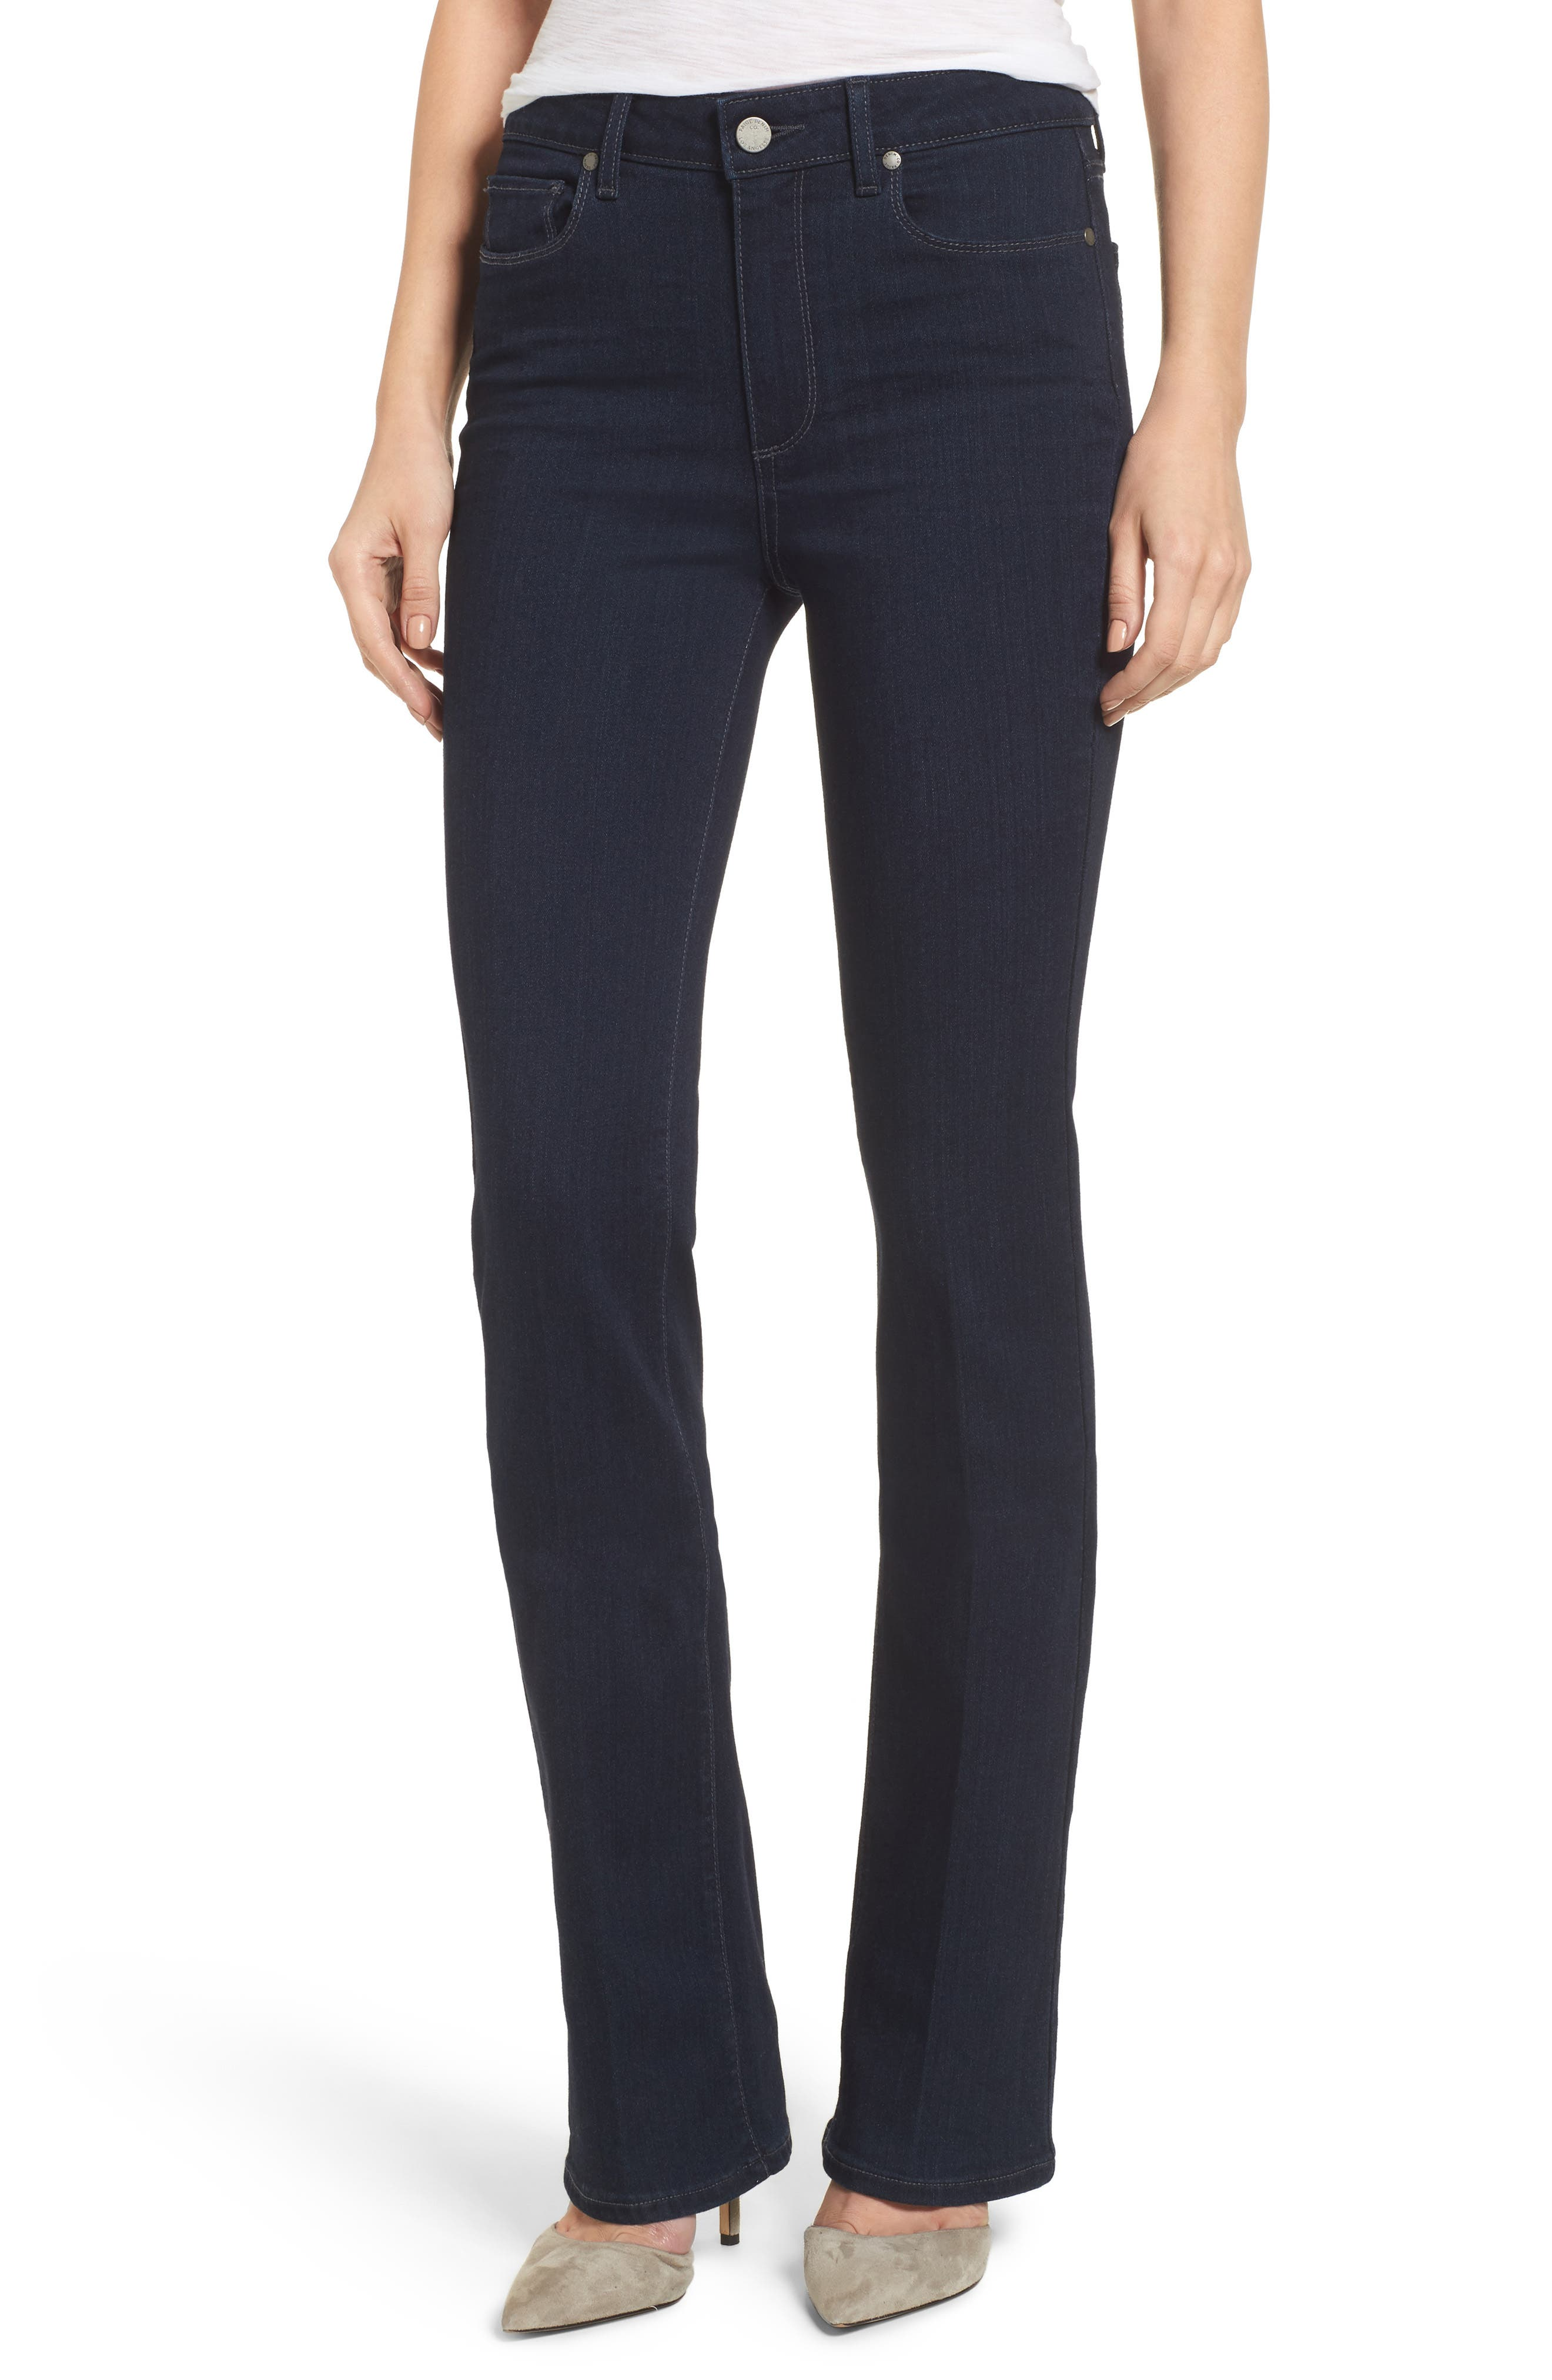 PAIGE Transcend - Manhattan High Rise Bootcut Jeans